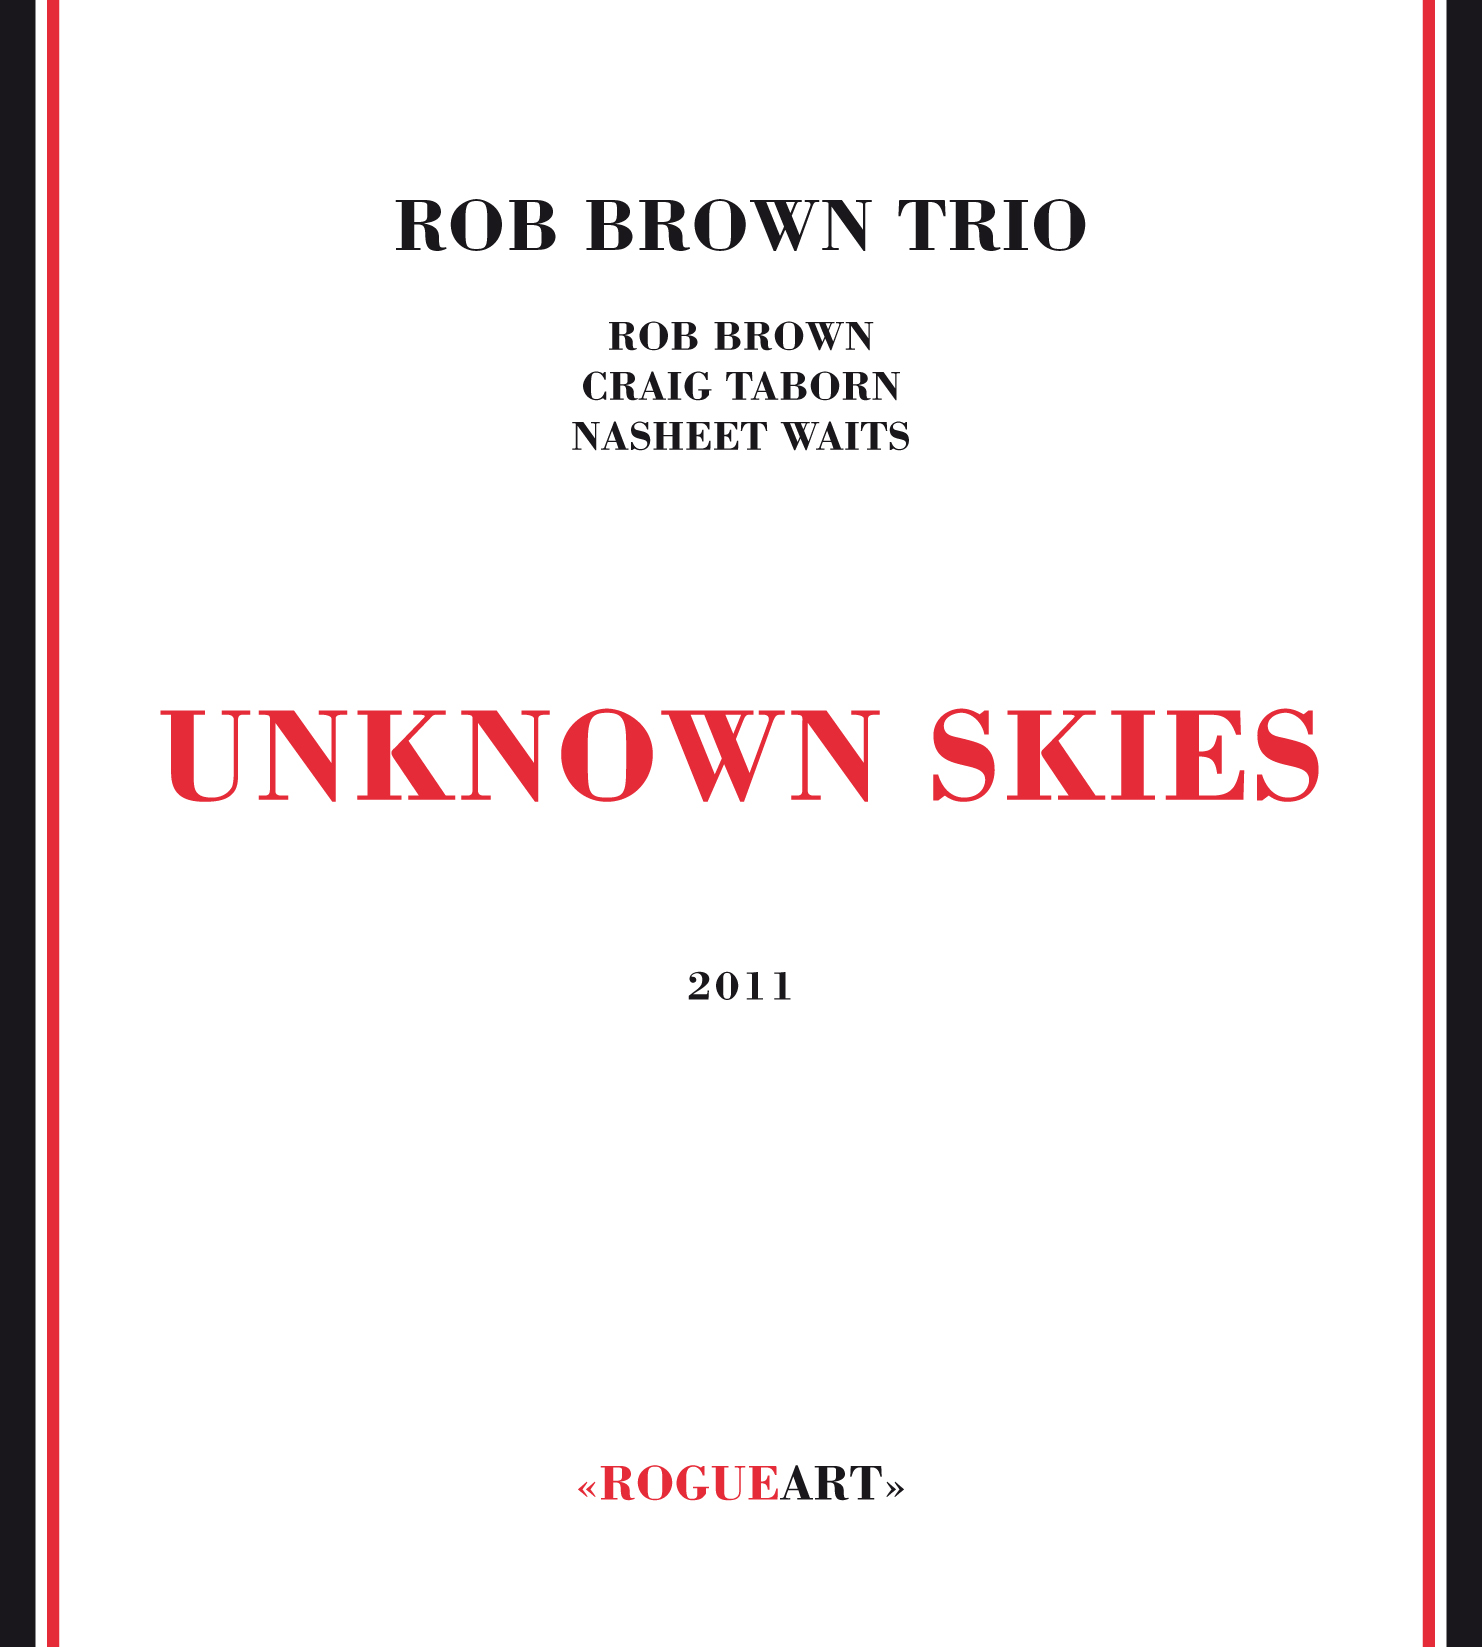 Front cover of the album UNKNOWN SKIES